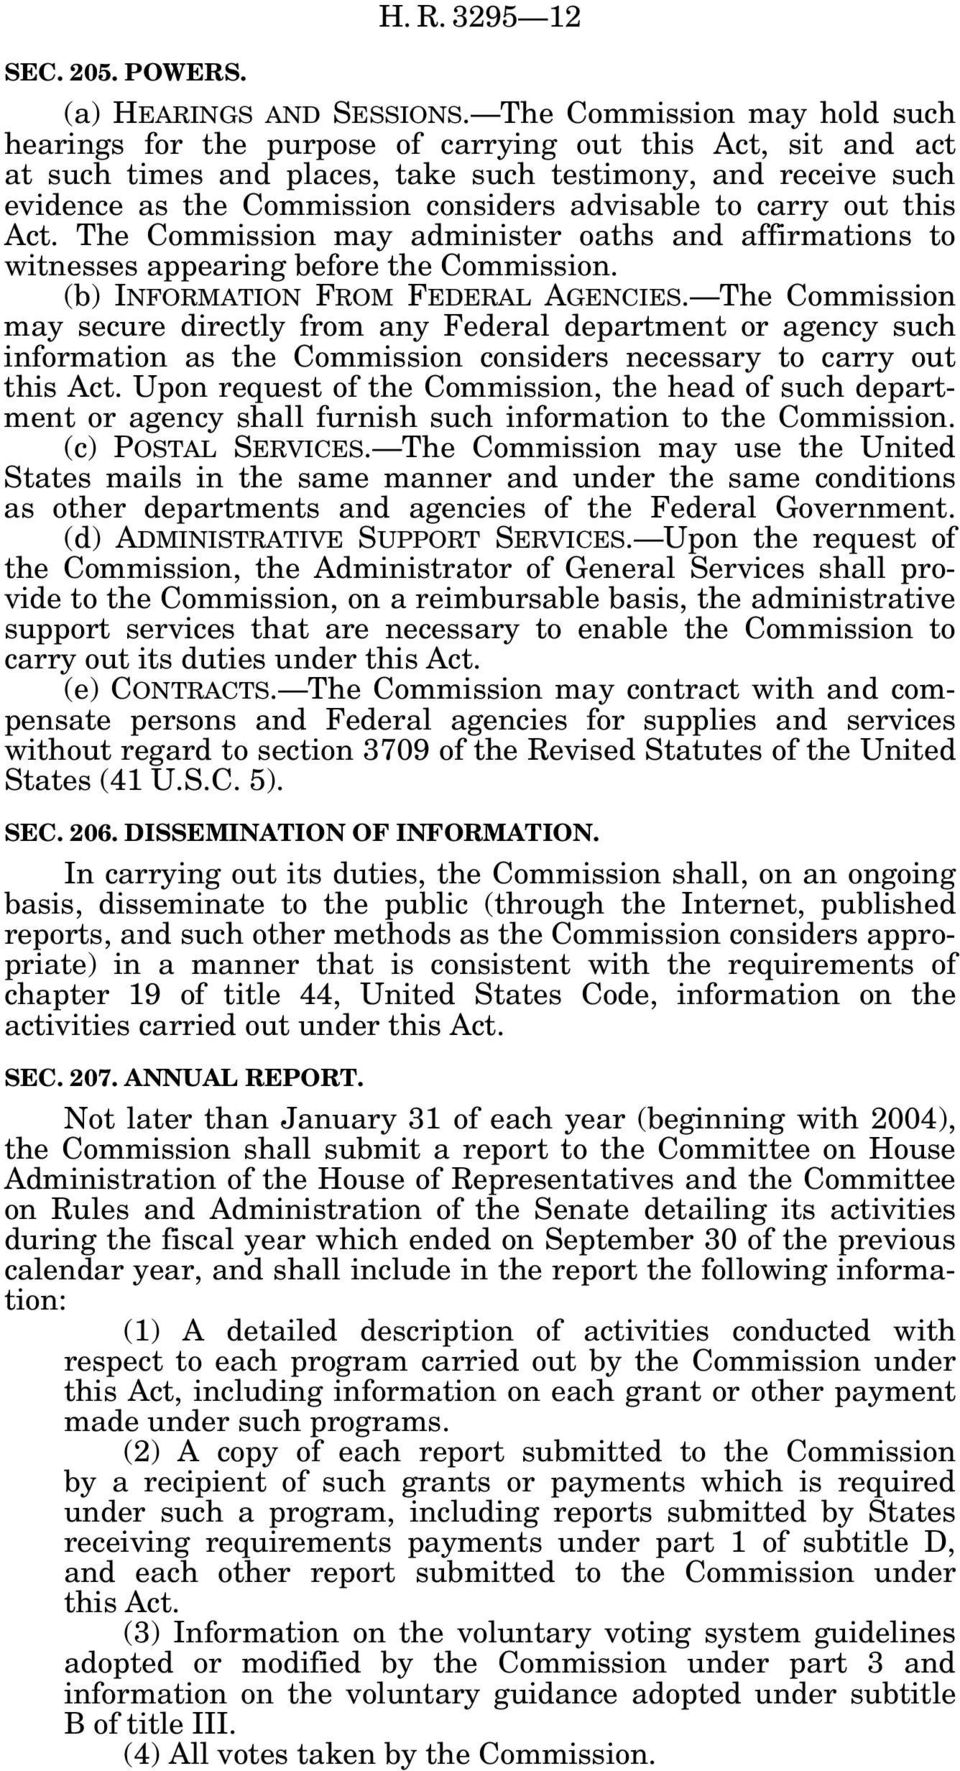 advisable to carry out this Act. The Commission may administer oaths and affirmations to witnesses appearing before the Commission. (b) INFORMATION FROM FEDERAL AGENCIES.